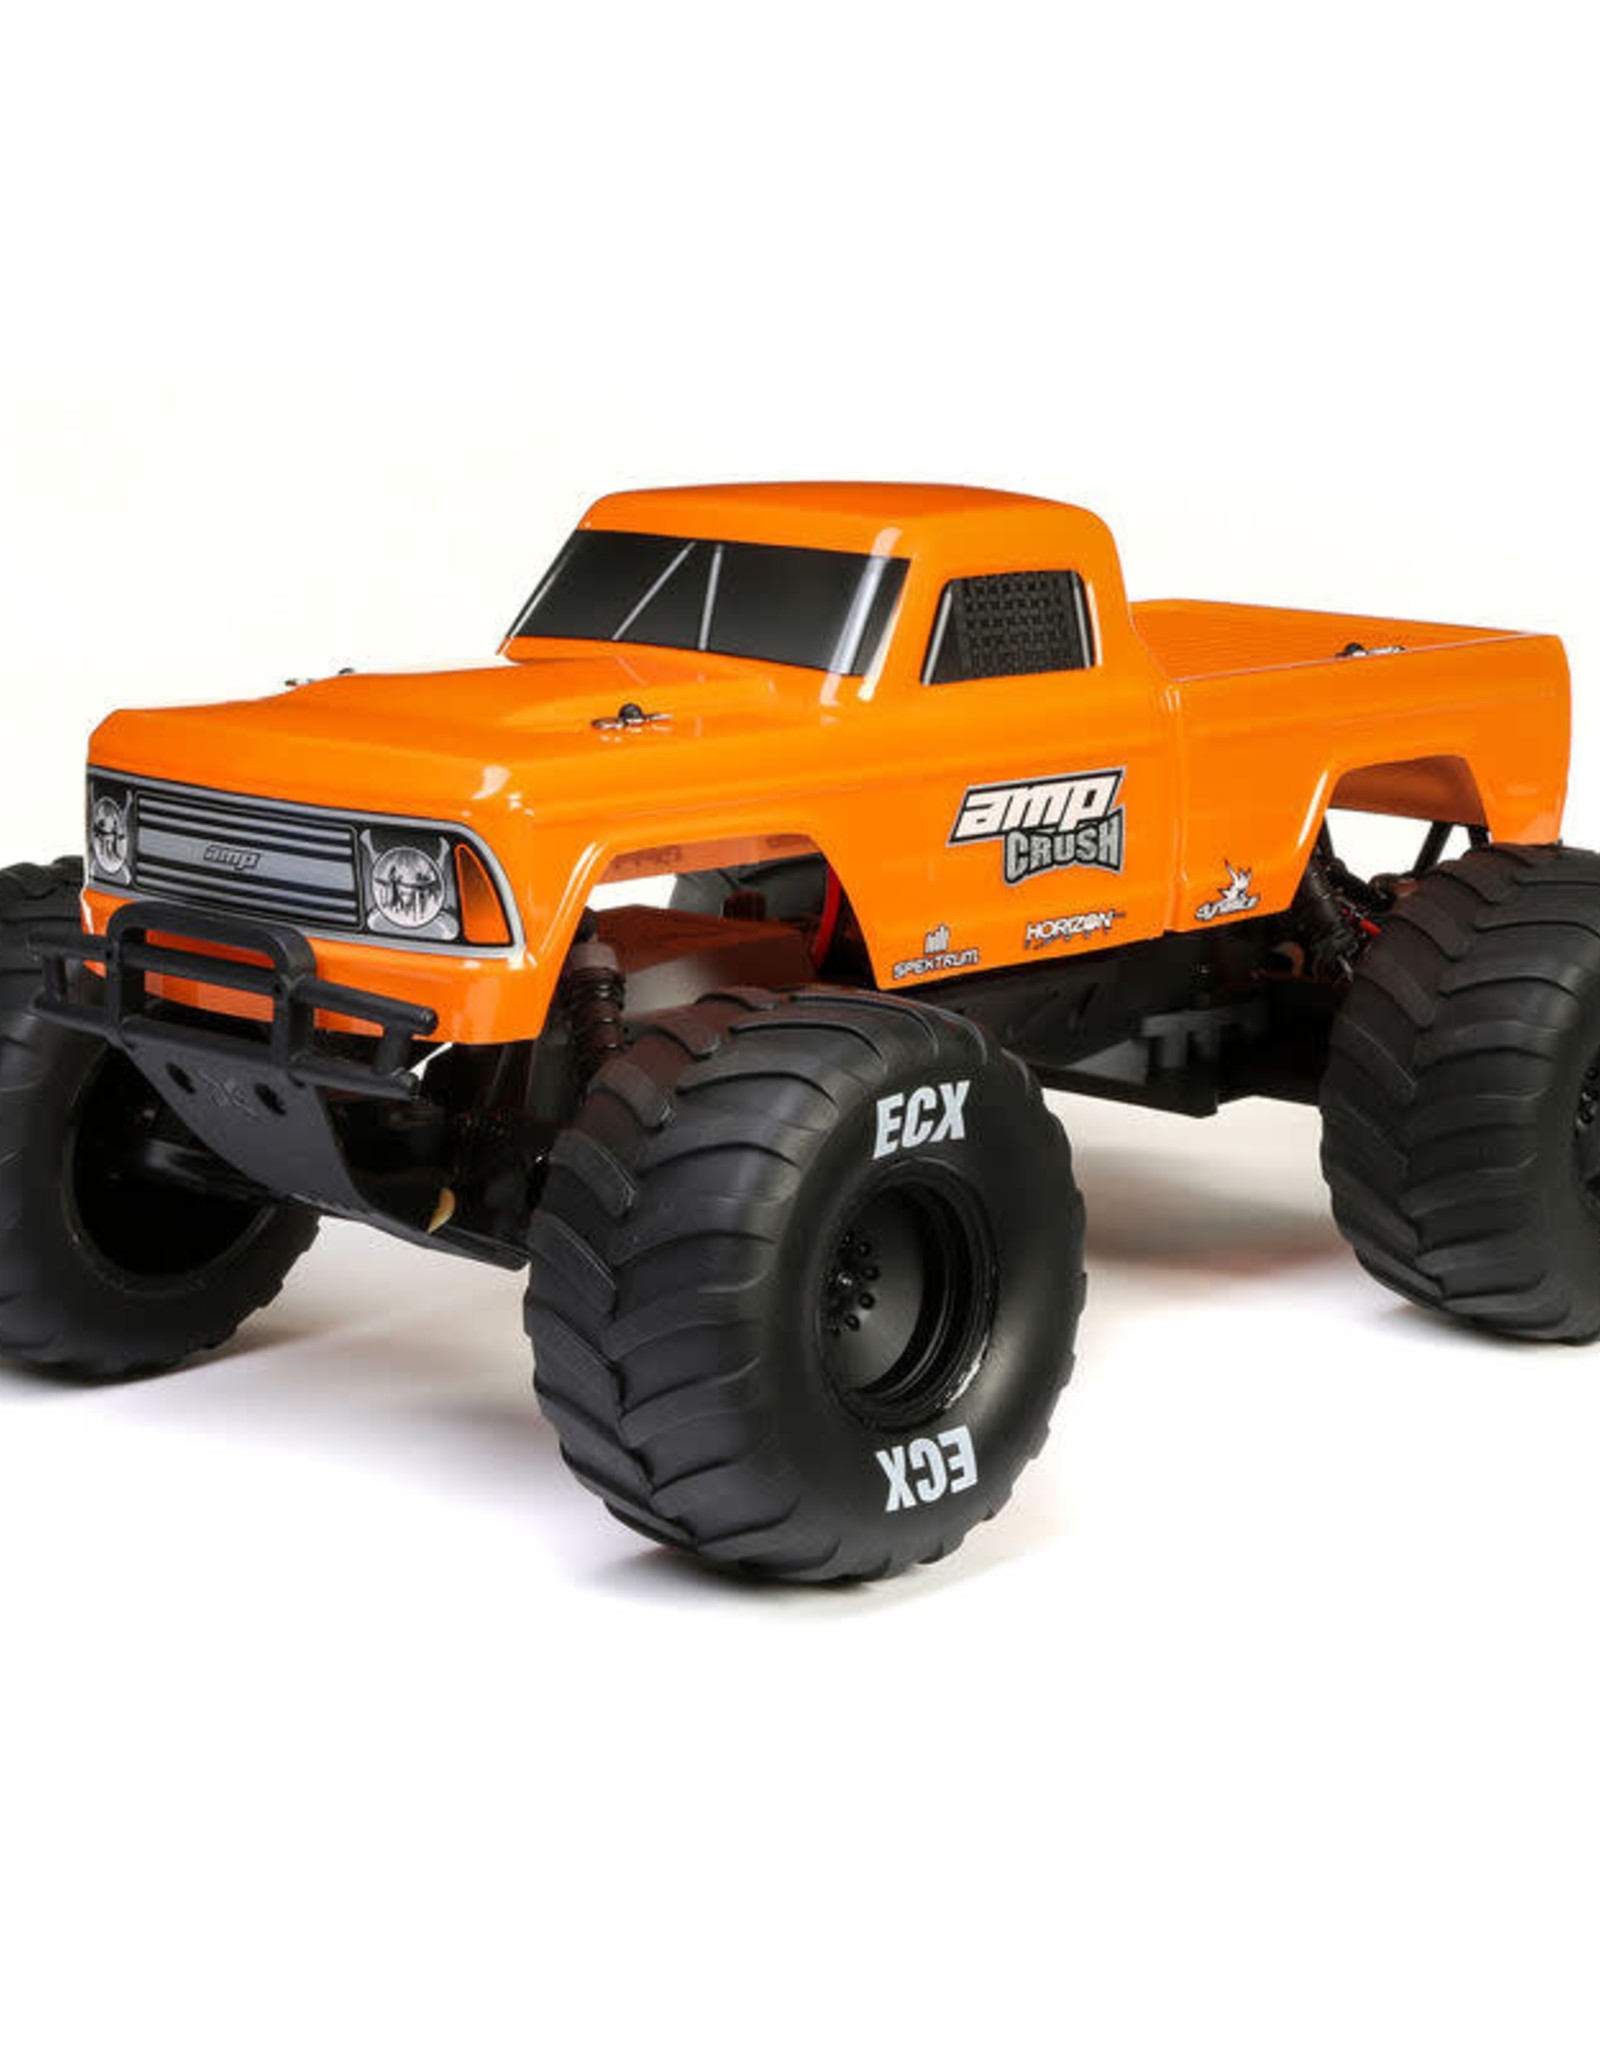 ECX ECX03048T2 1/10 AMP CRUSH MT 2WD: Orange RTR